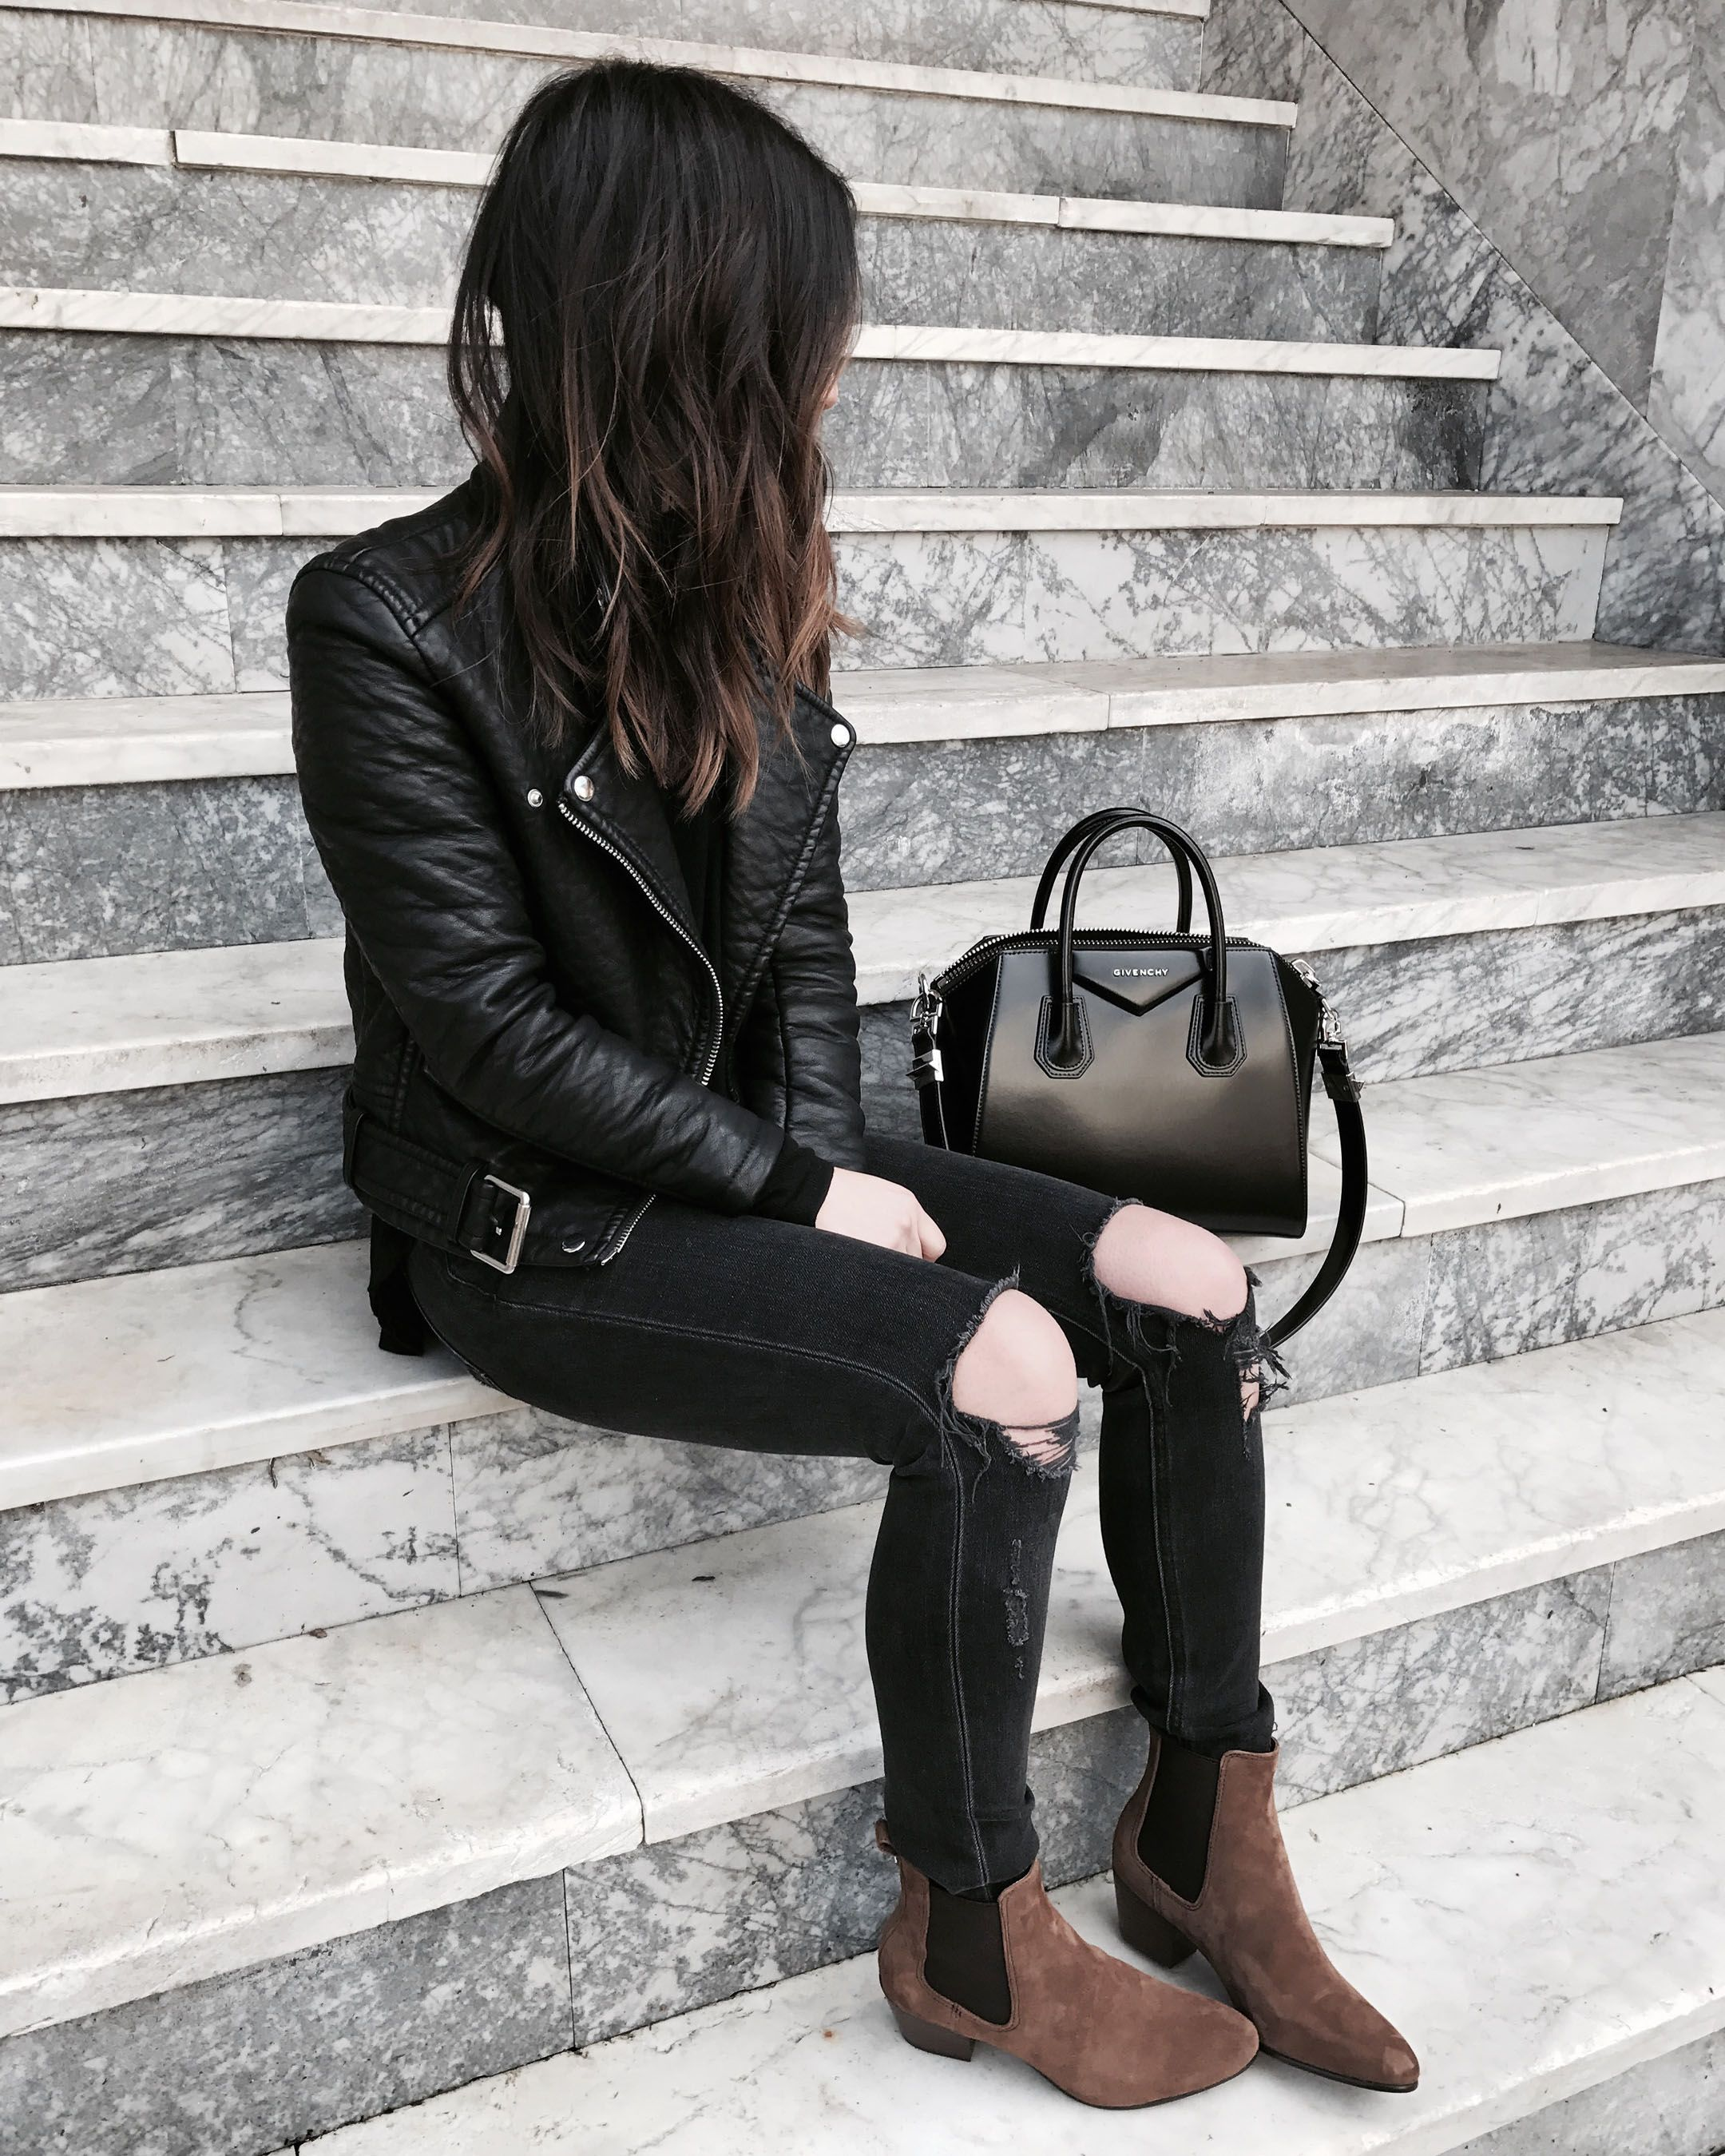 dbc0ff564f92 My Favorite Boots for Fall. Sam Edelman Reesa Chelsea boots